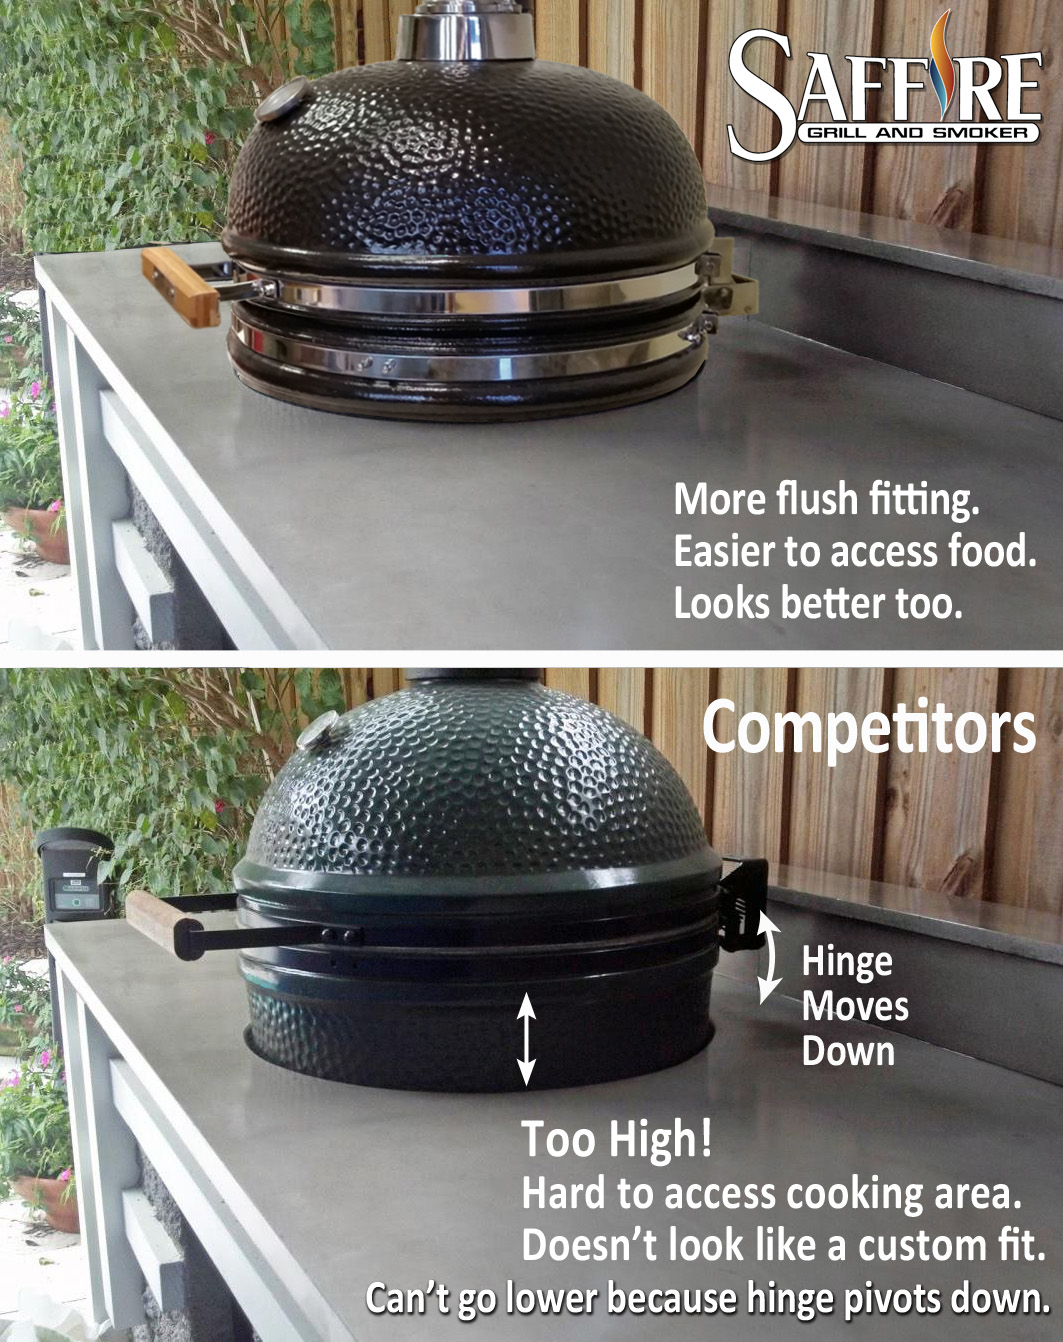 Saffire built-ins are more flush-fitting, easier to access the food, and look nicer. Big Green Egg built-ins are too high, hard to access the food inside, and don't look like they fit nicely with the BBQ counter or island.